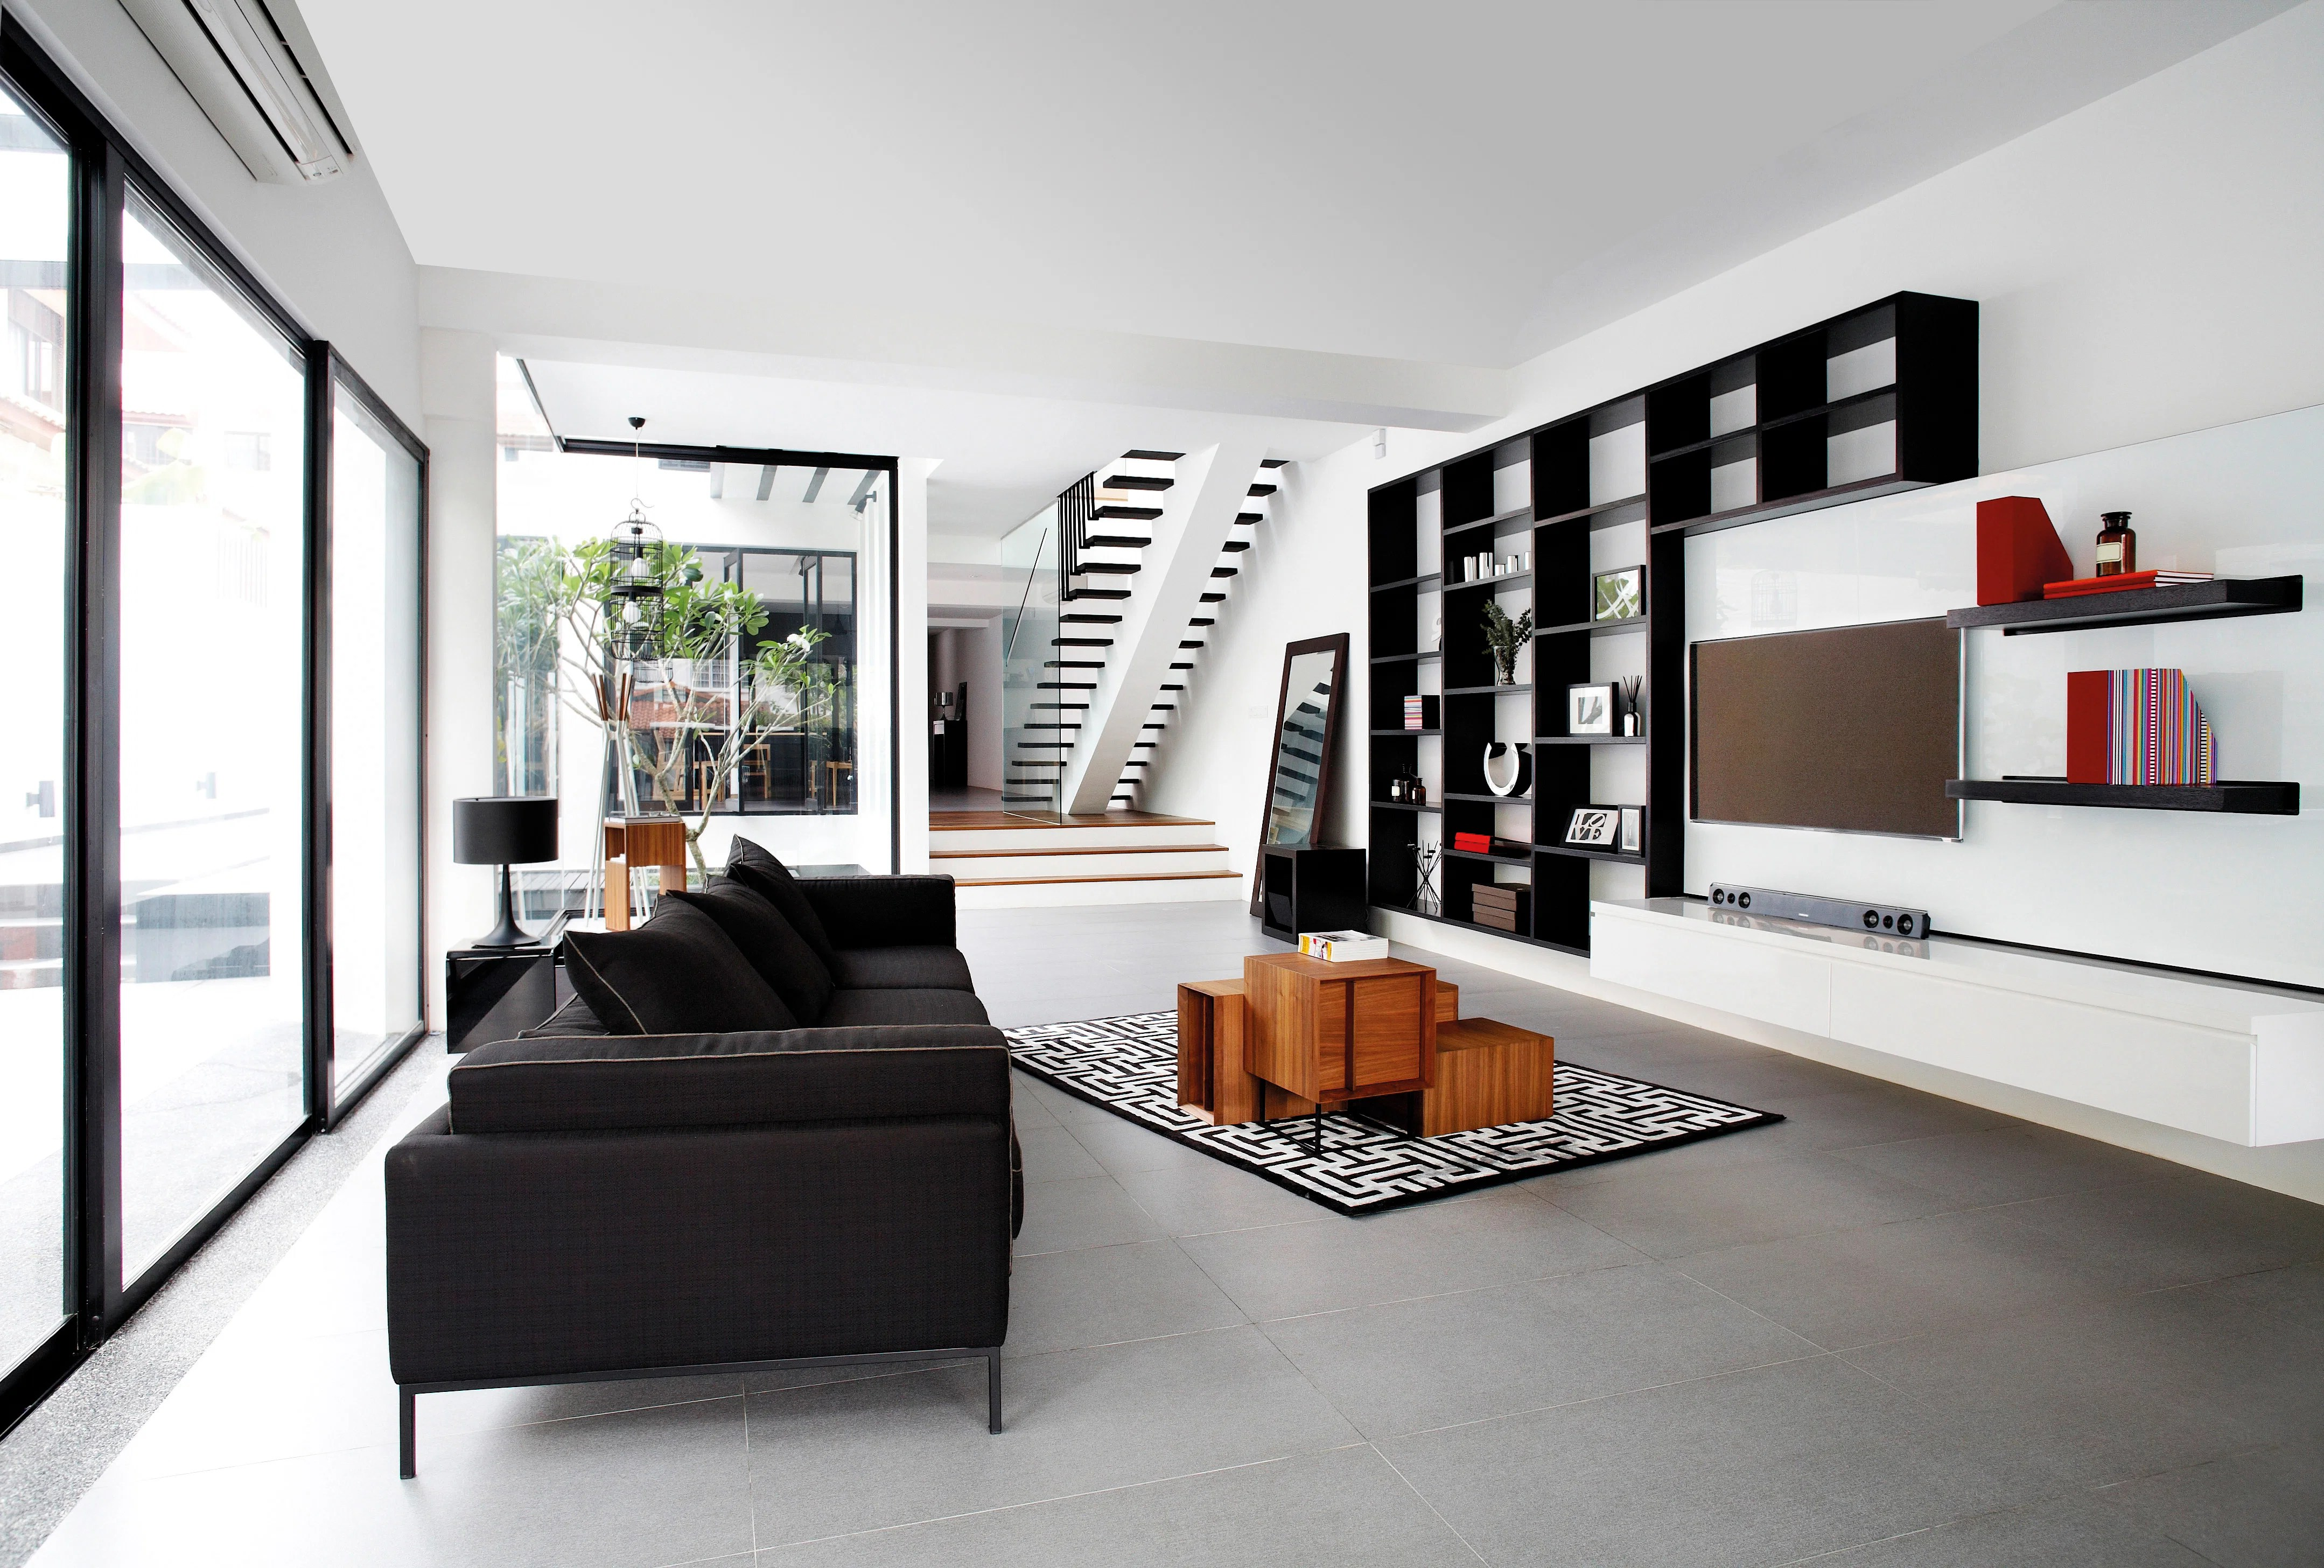 House Tour: This Semi-detached House Takes On Both